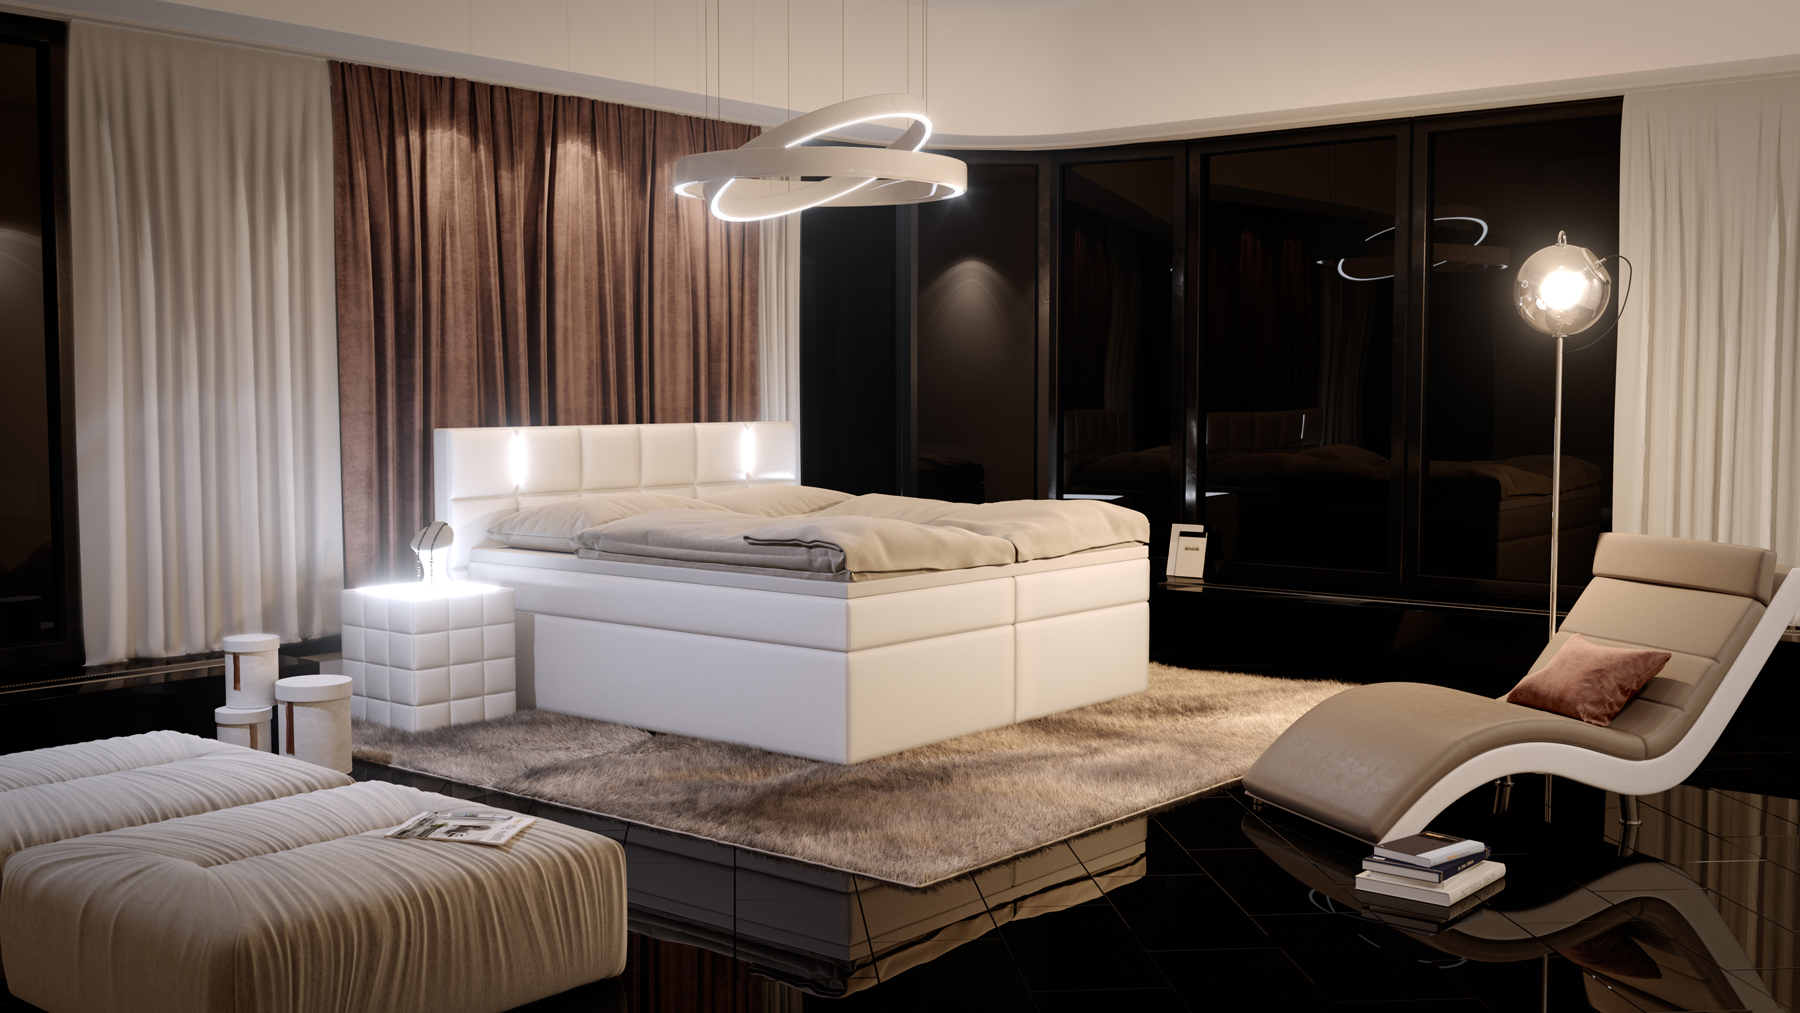 sam boxspringbett mit led hotelbett 200 x 200 cm wei salerno. Black Bedroom Furniture Sets. Home Design Ideas